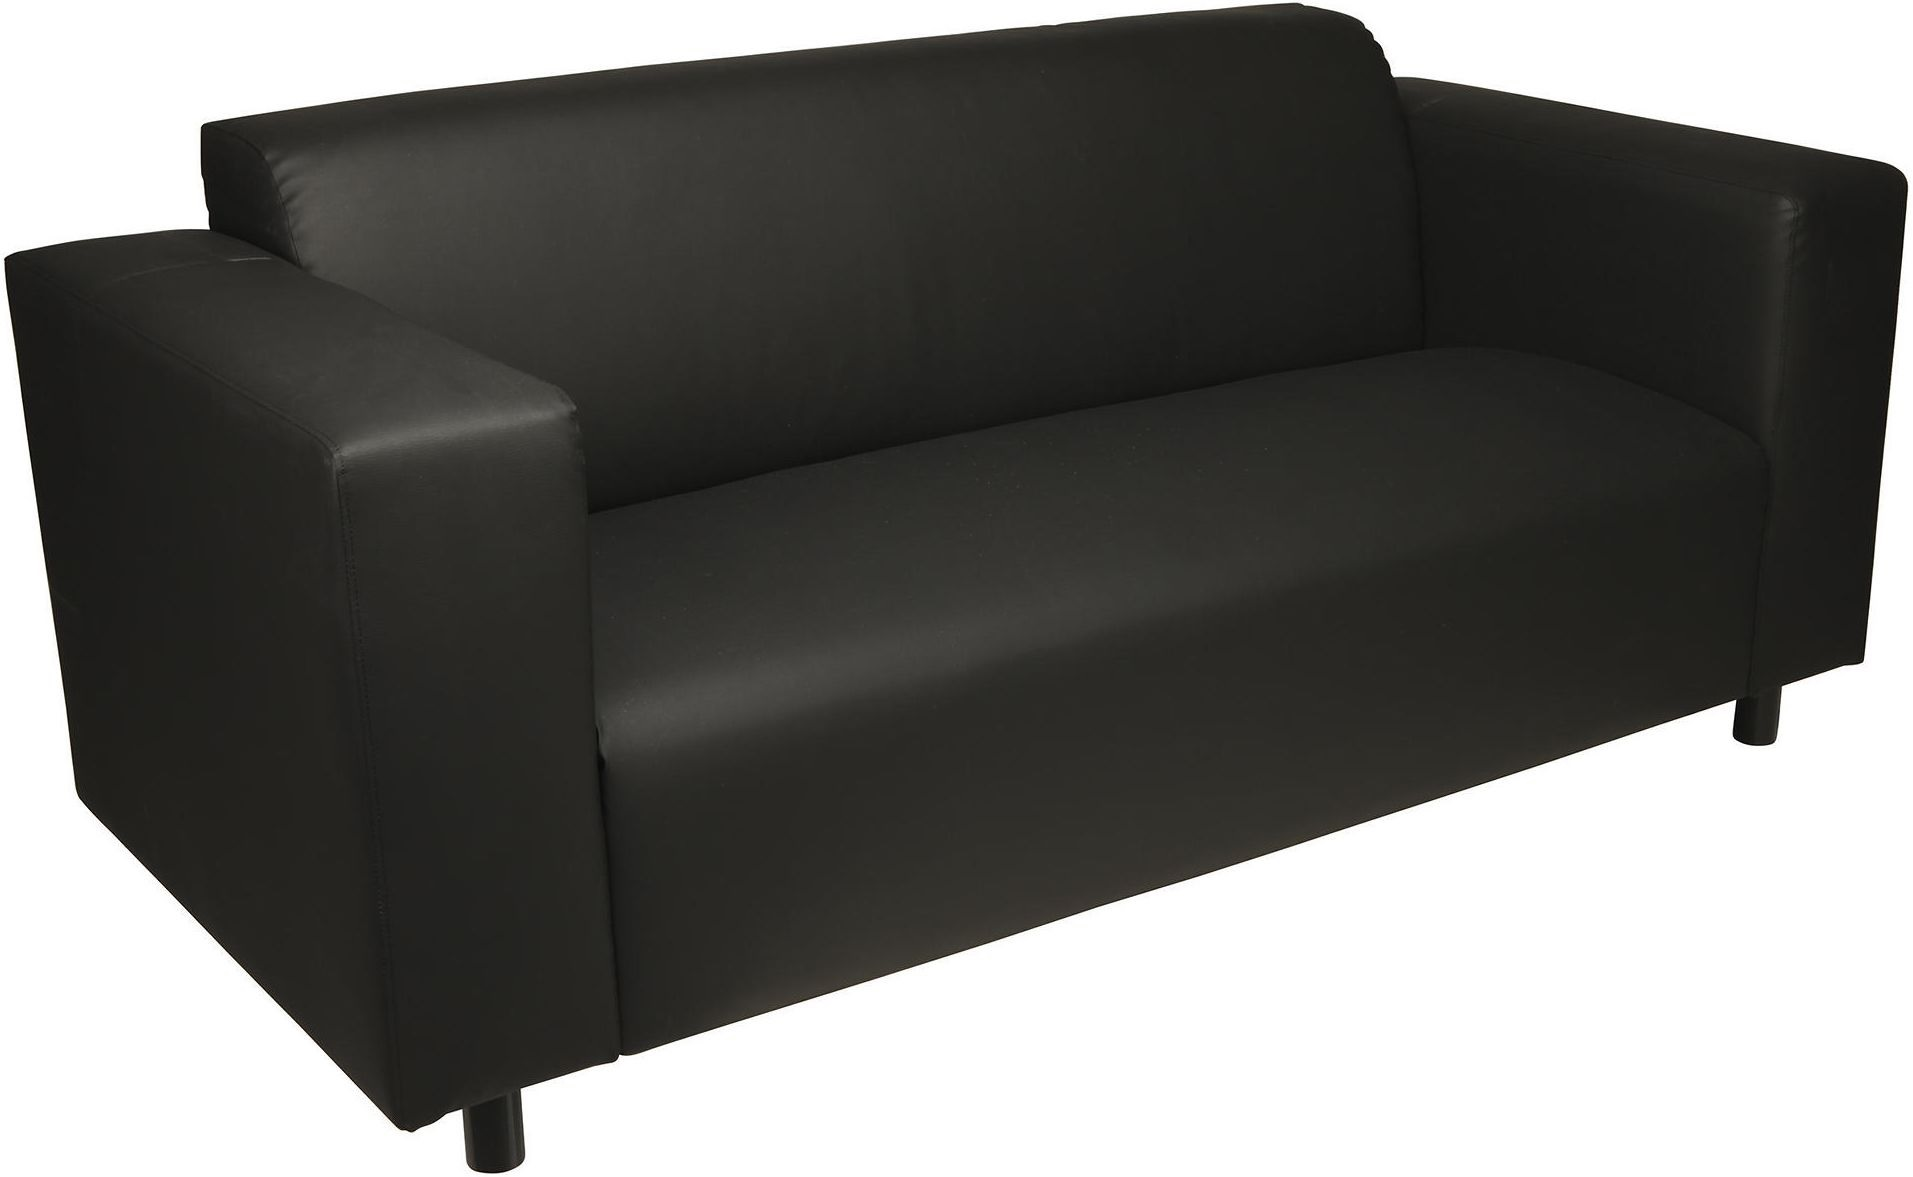 New Stanza Small 2 Seater Leather Effect Sofa Black Ebay